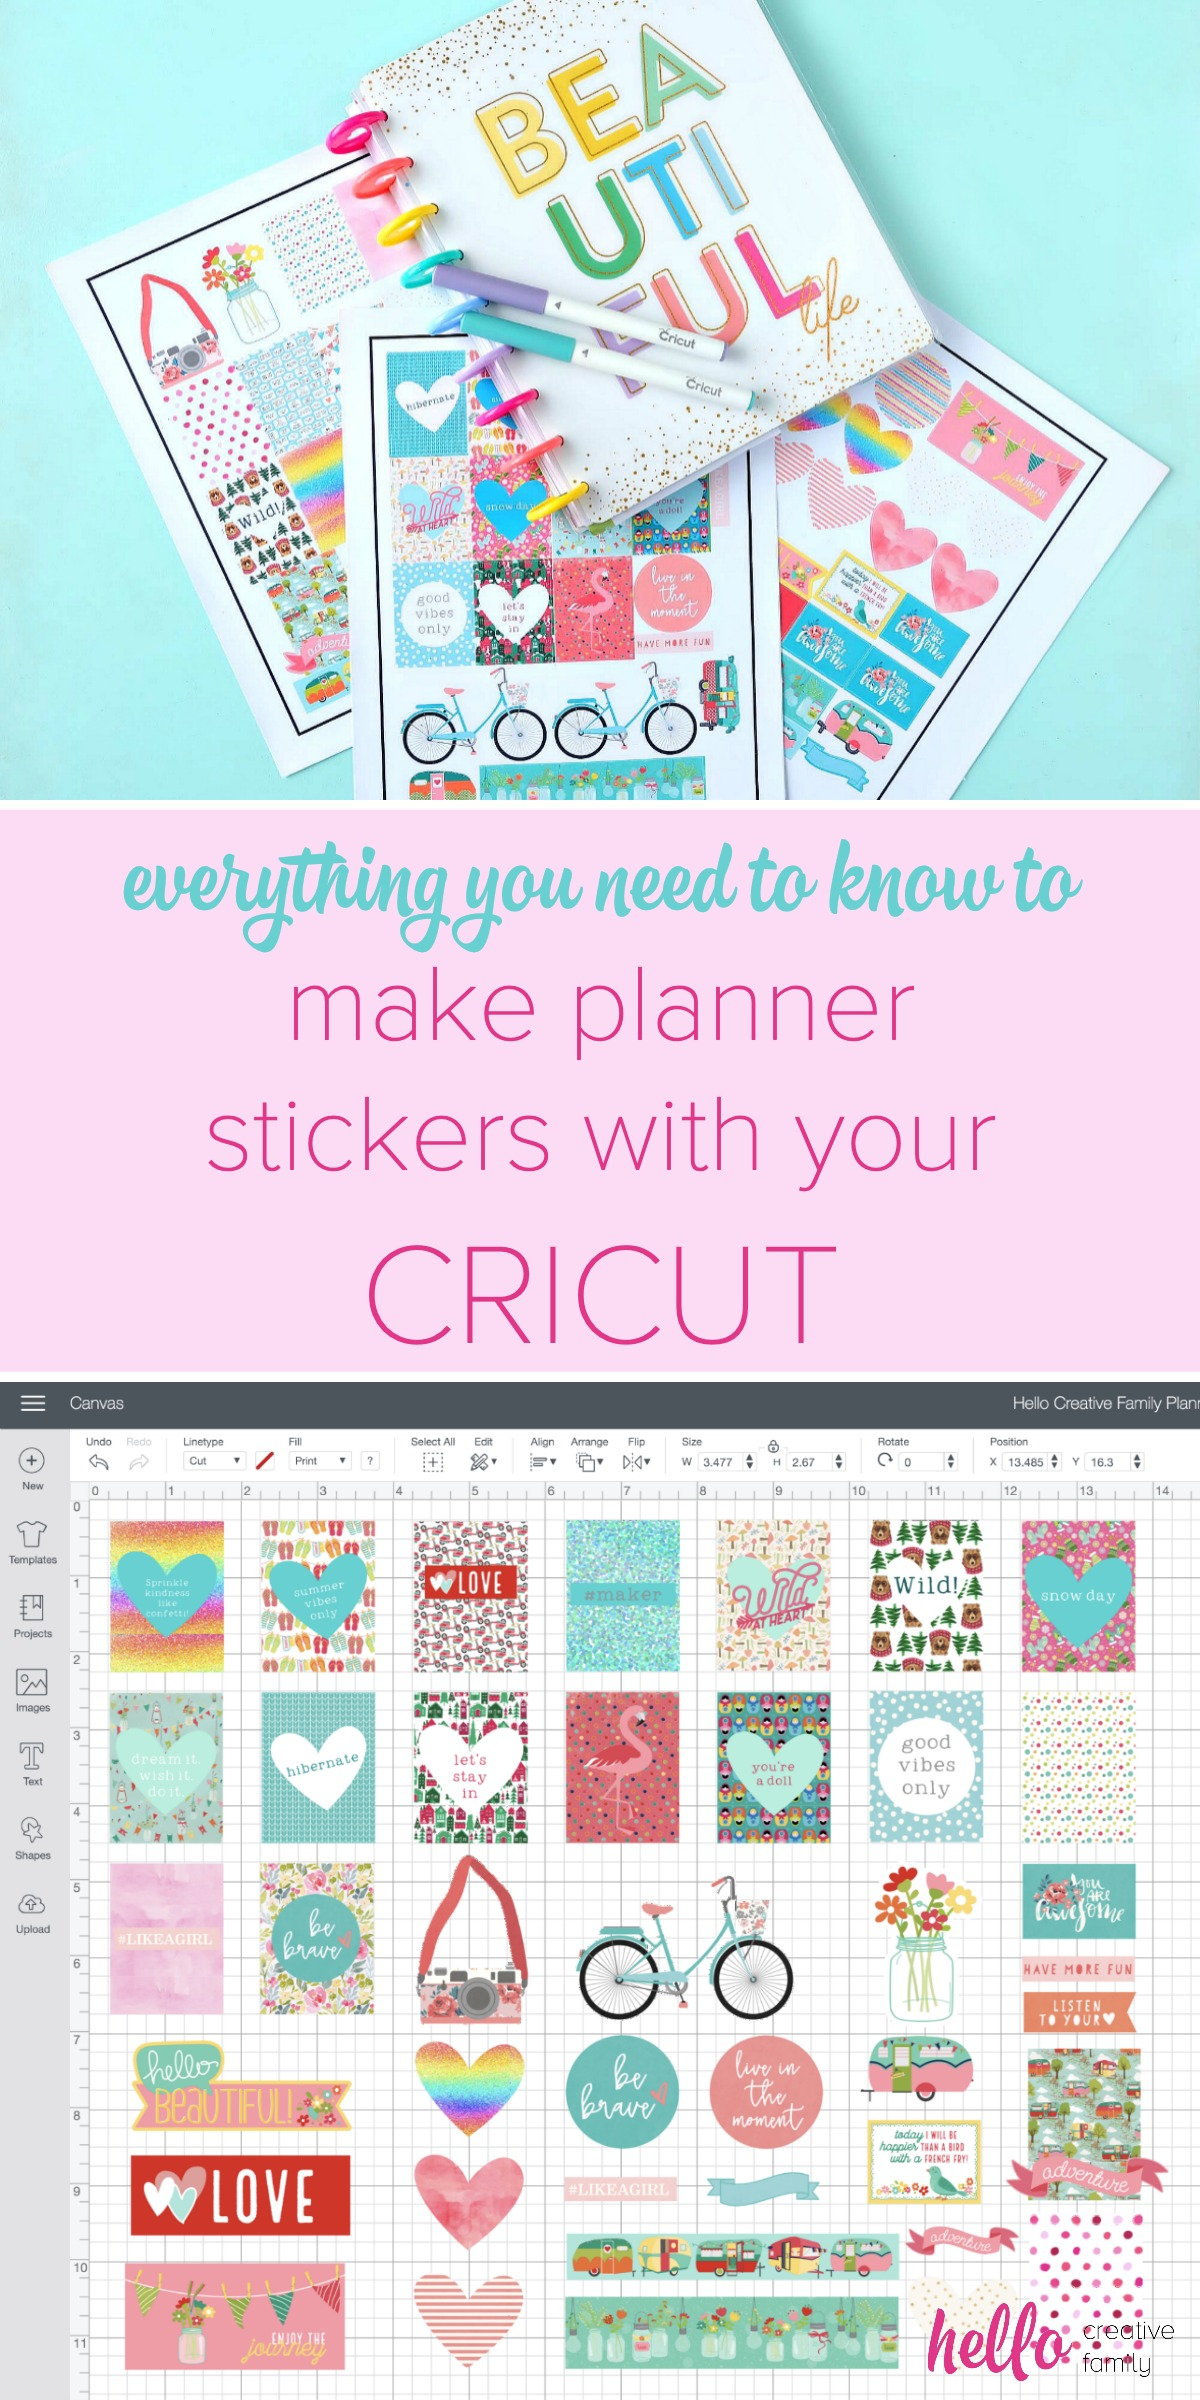 Love planners? Have a Cricut? We're sharing everything you need to know to make DIY planner stickers with your Cricut. With this step by step tutorial we're sharing how easy it is to use the print and cut function in Cricut Design Space to create amazing custom and personalized planner stickers! Perfect for whether you use a Happy Planners, Bullet Journal, Lily Pulitzer or any other planner out there! #Planners #HappyPlanner #Cricut #BulletJournal #PlannerAccessories #PlannerAddict